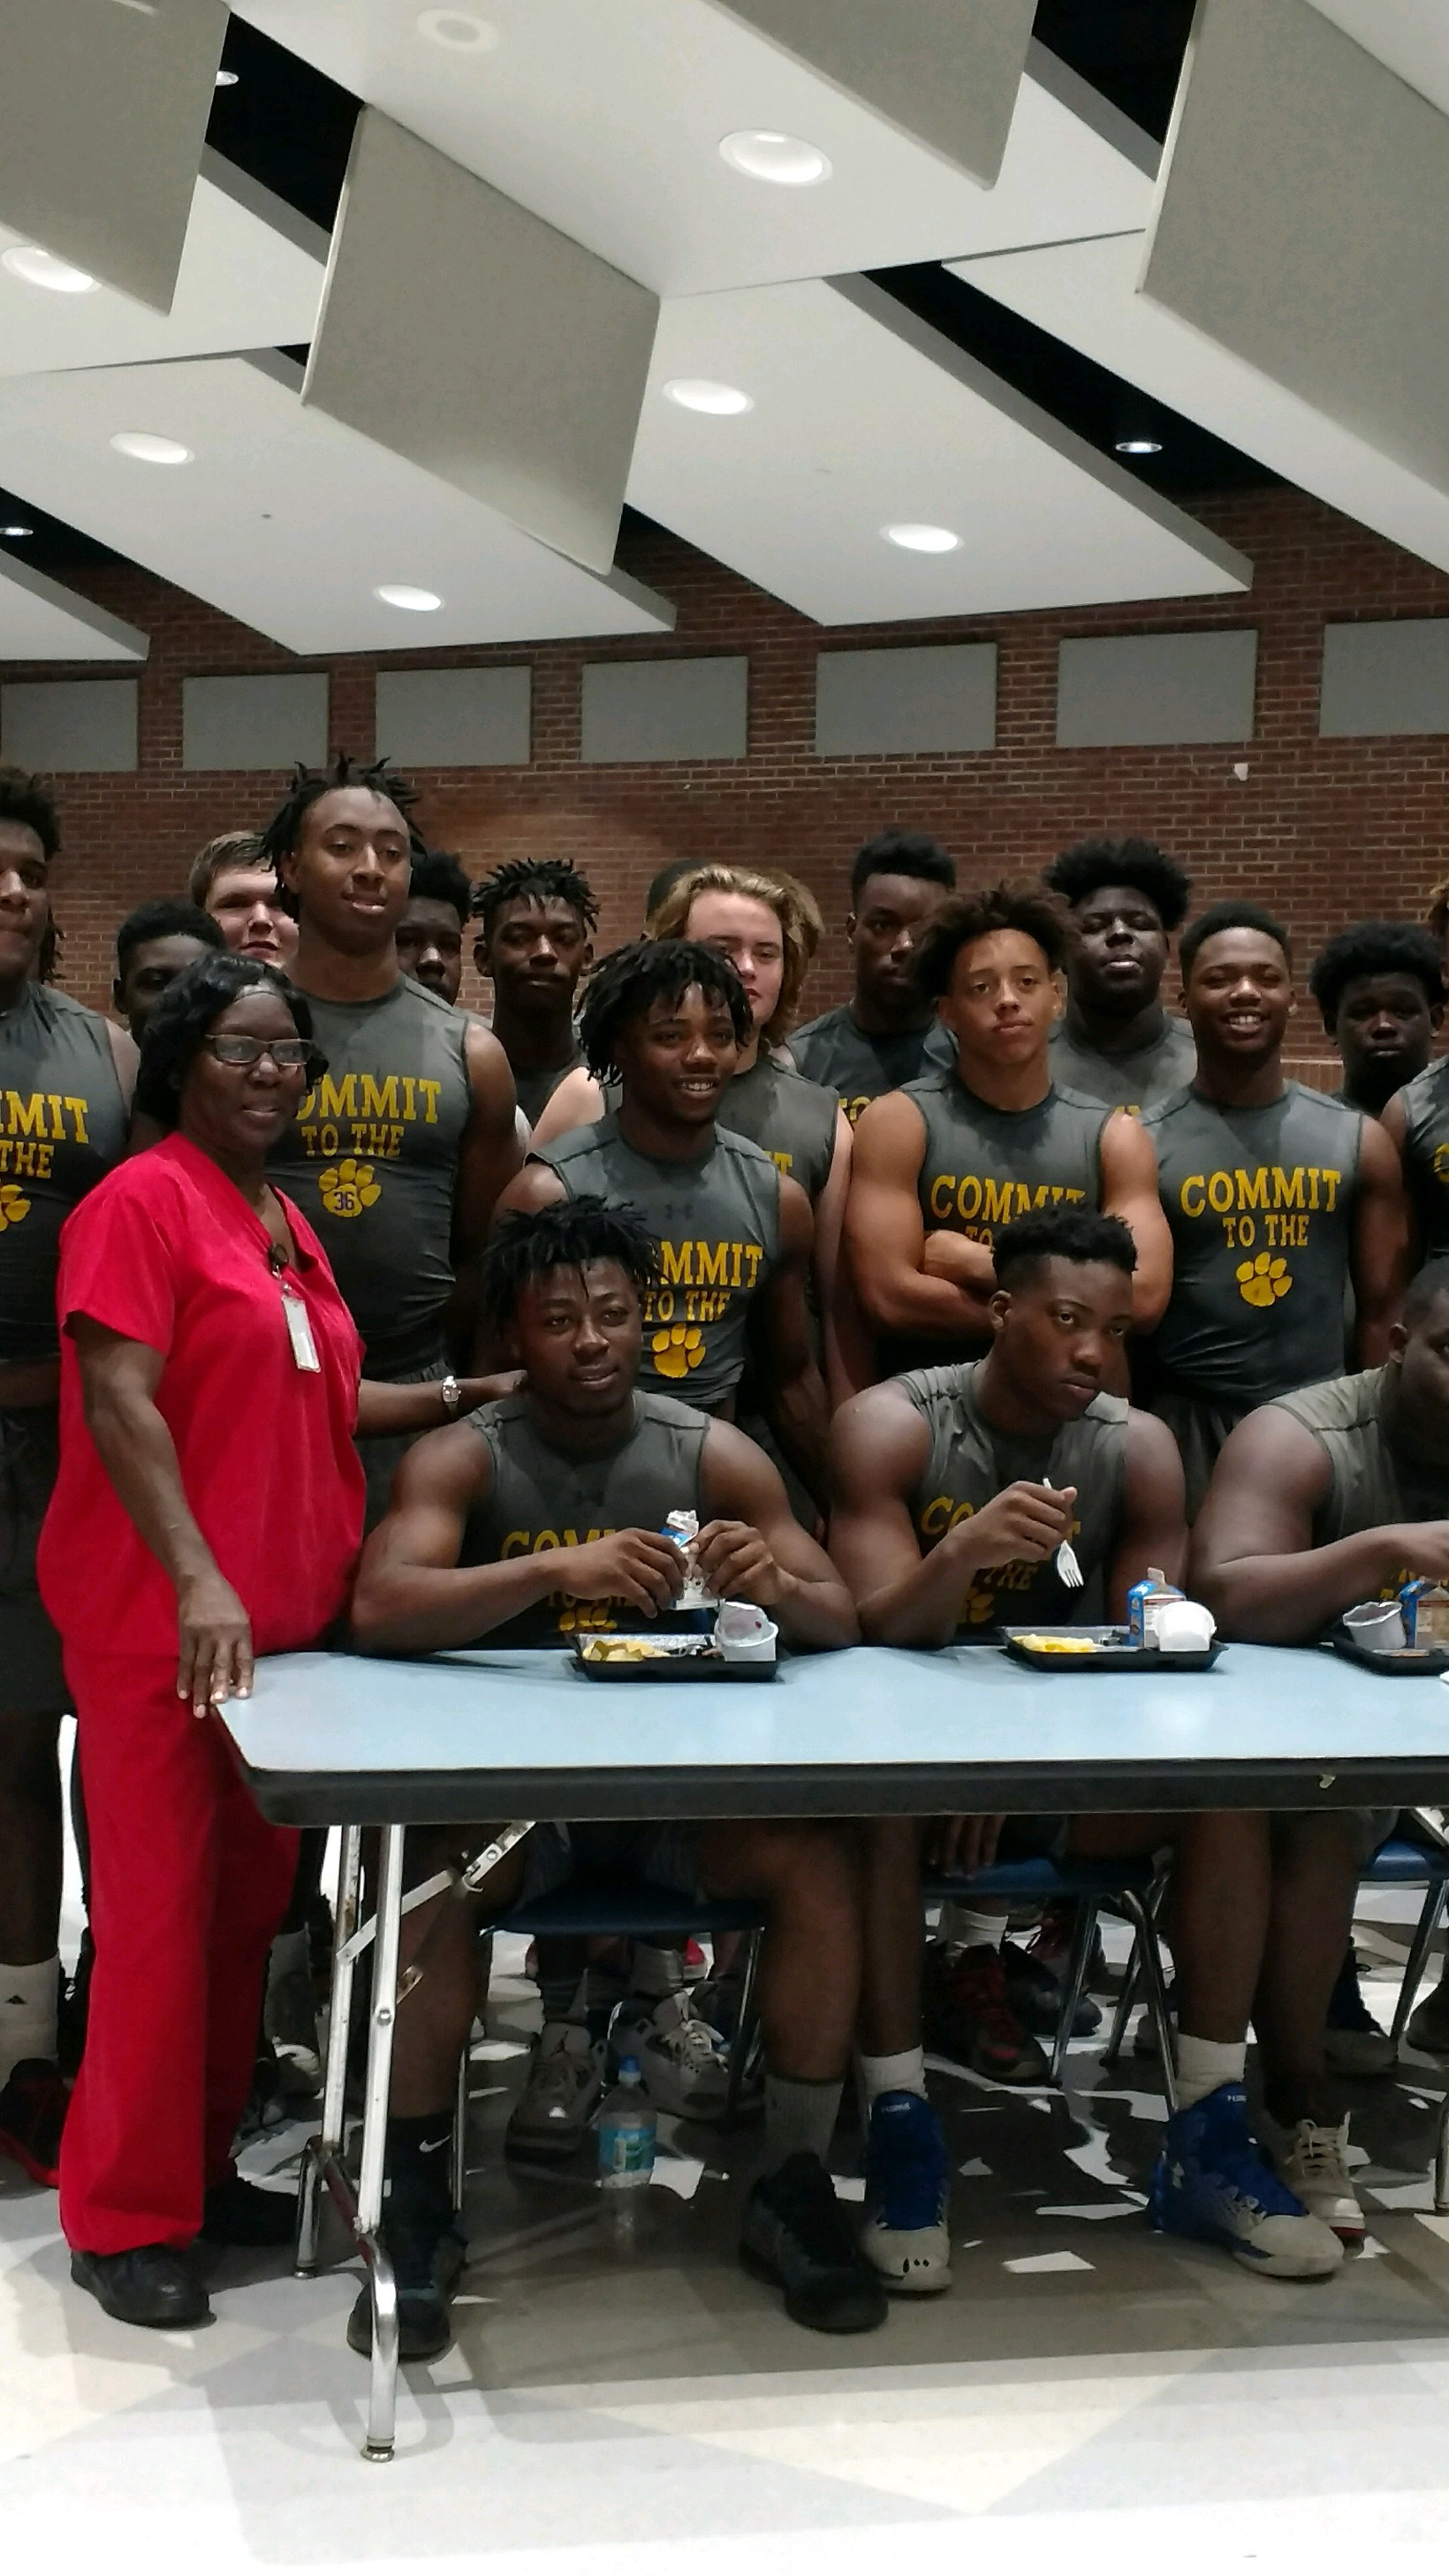 The high school football team eats breakfast and lunch with us all through the summer and during the school year